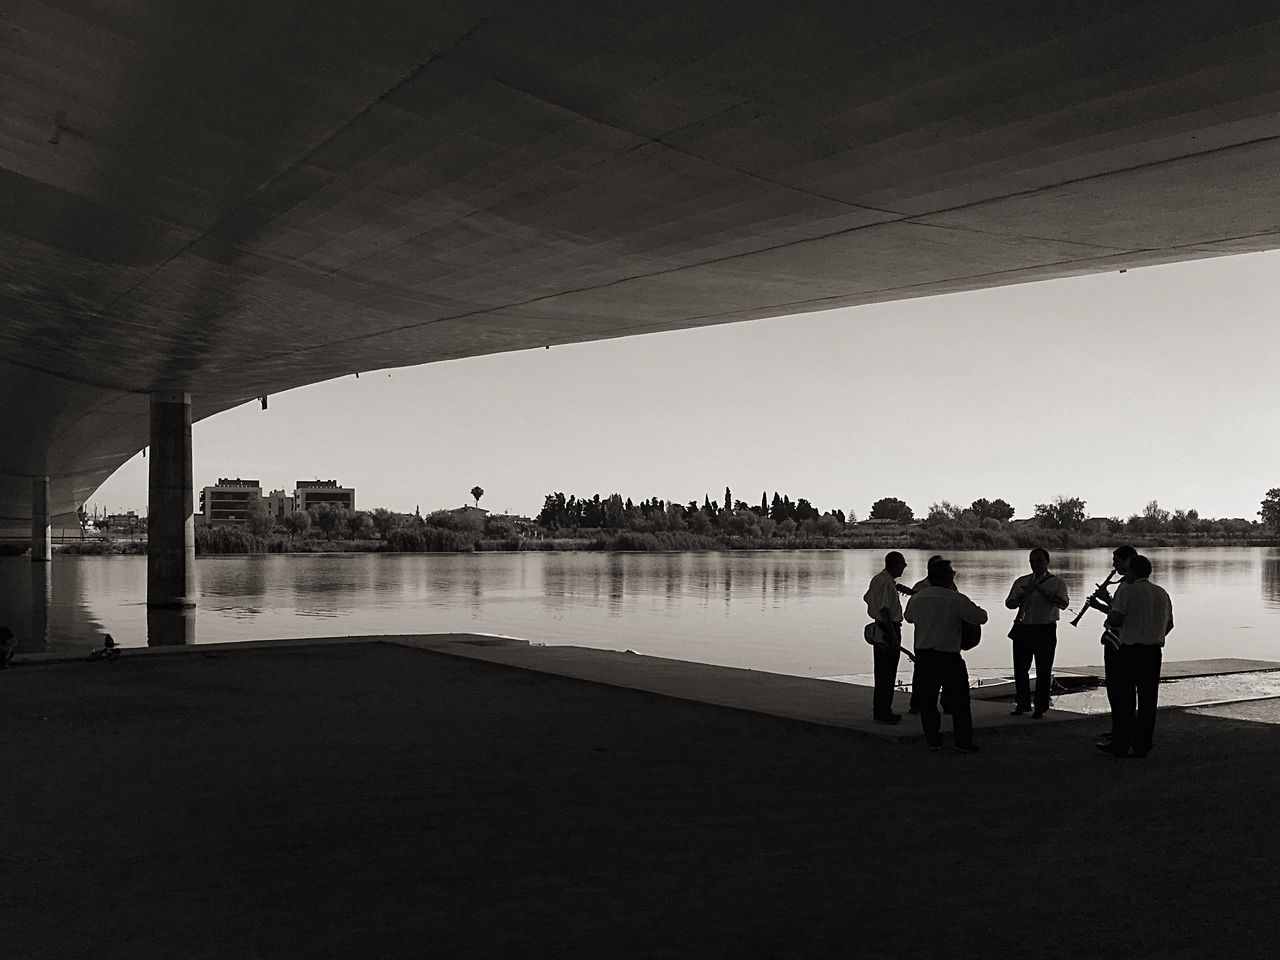 Bridge - Man Made Structure Delta De L'Ebre Musician Connection Full Length Real People Built Structure Architecture River Water Togetherness Below Lifestyles Standing Friendship Day Under Outdoors Men Clear Sky Sky Underneath The Architect - 2017 EyeEm Awards